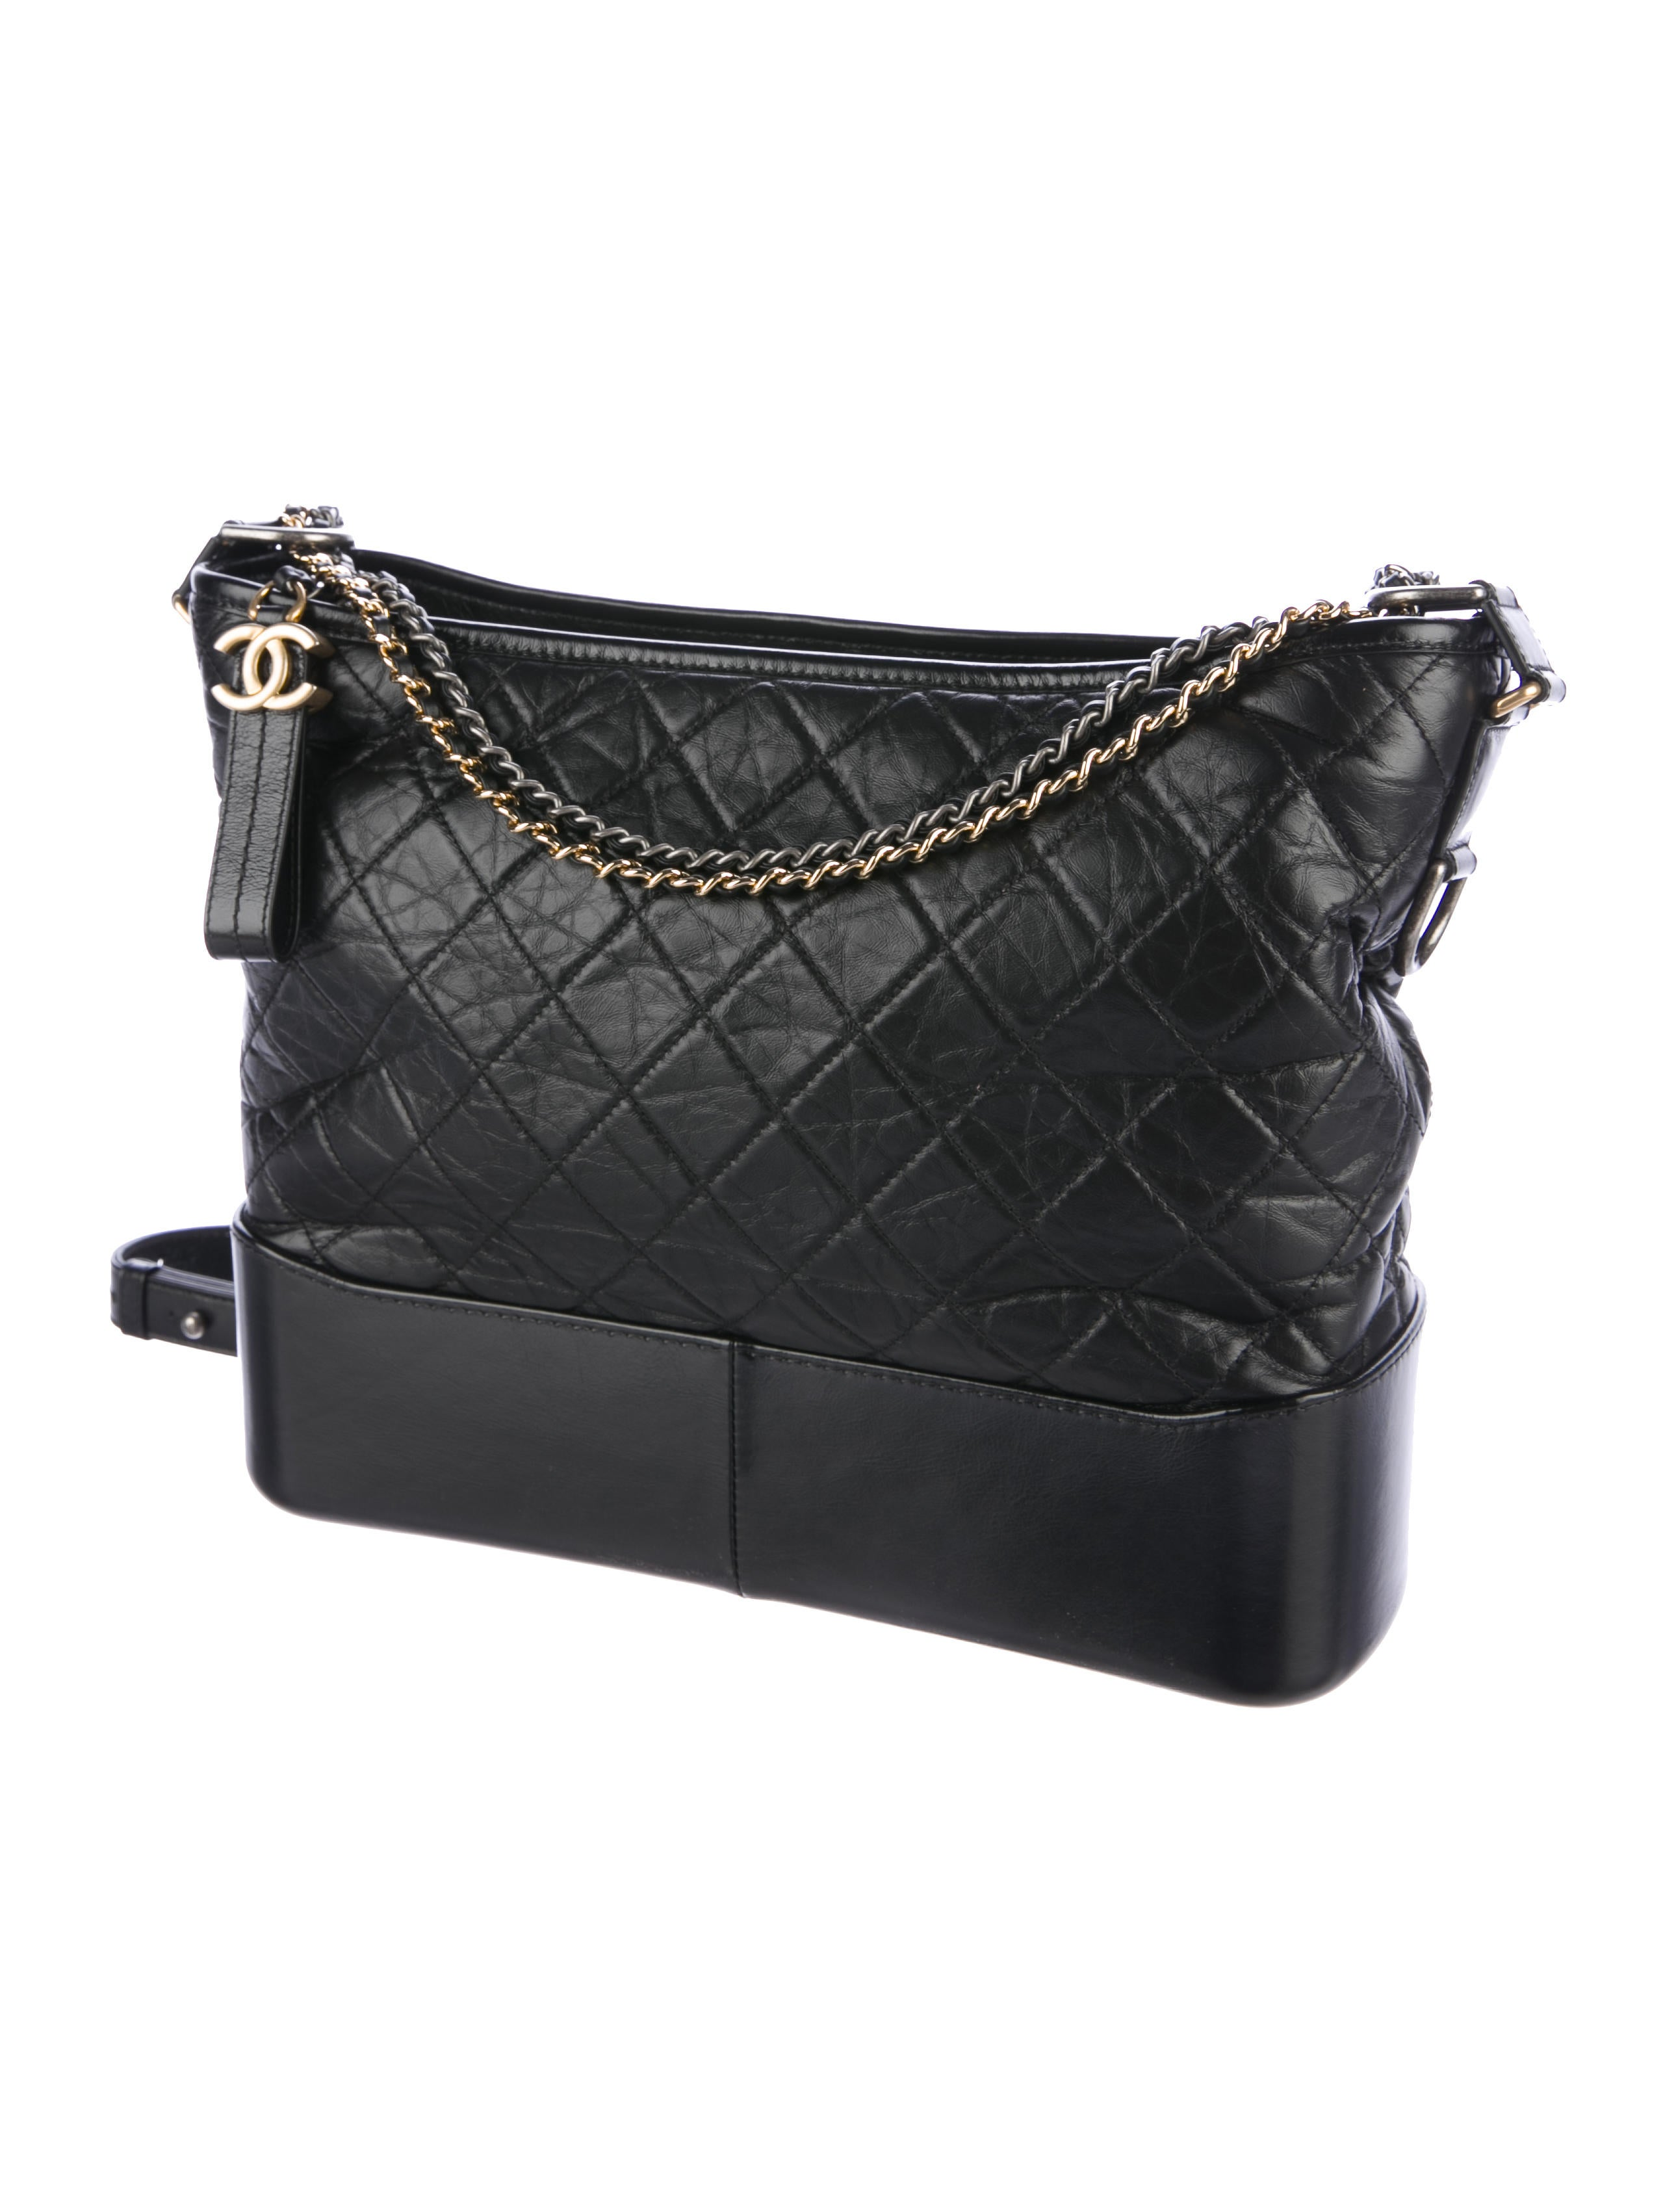 7de8c537acd8d4 Chanel Hobo Handbag 2017   Stanford Center for Opportunity Policy in ...